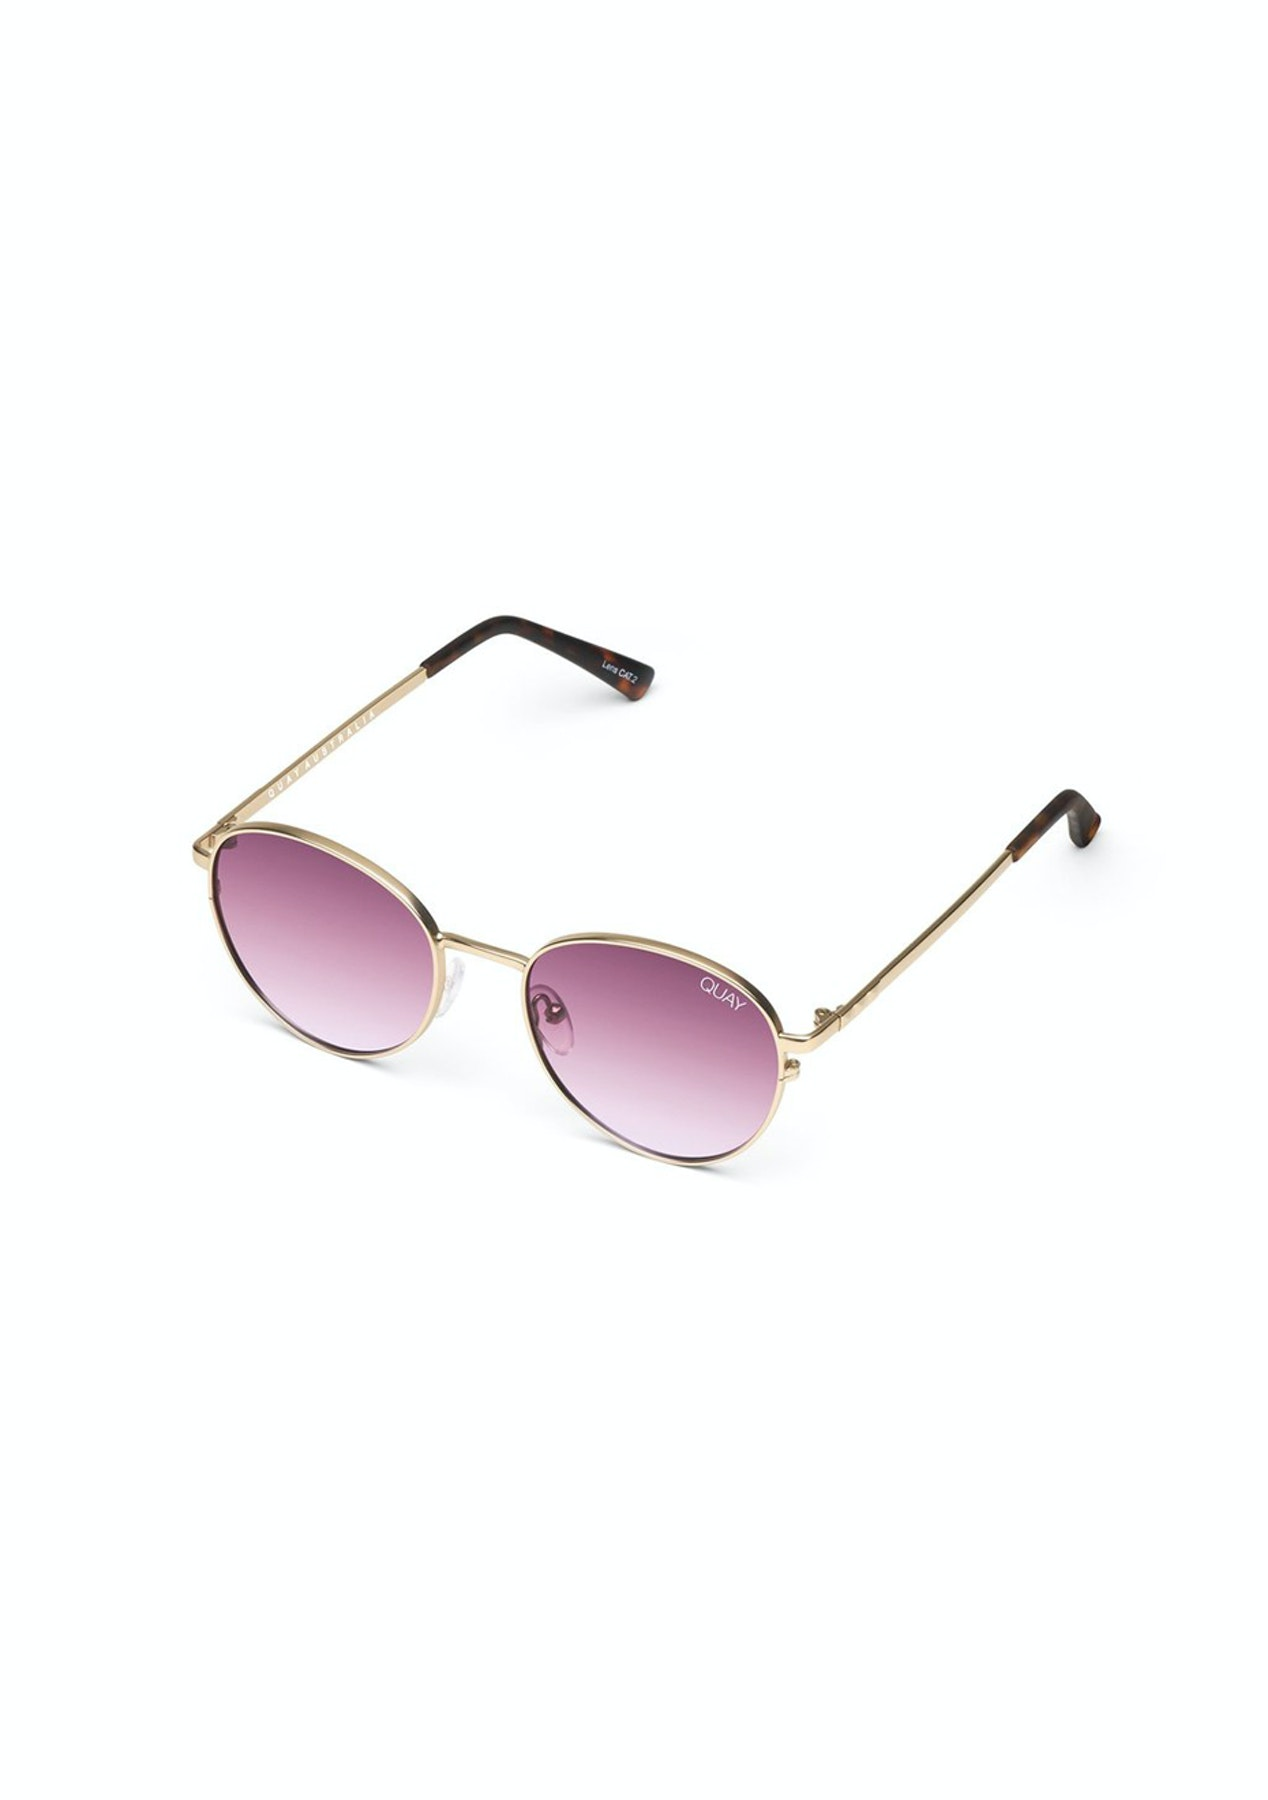 7dc6b14f70 Quay Australia - Crazy Love - Gold Purple Lens - NEW Quay Australia + More  - Onceit